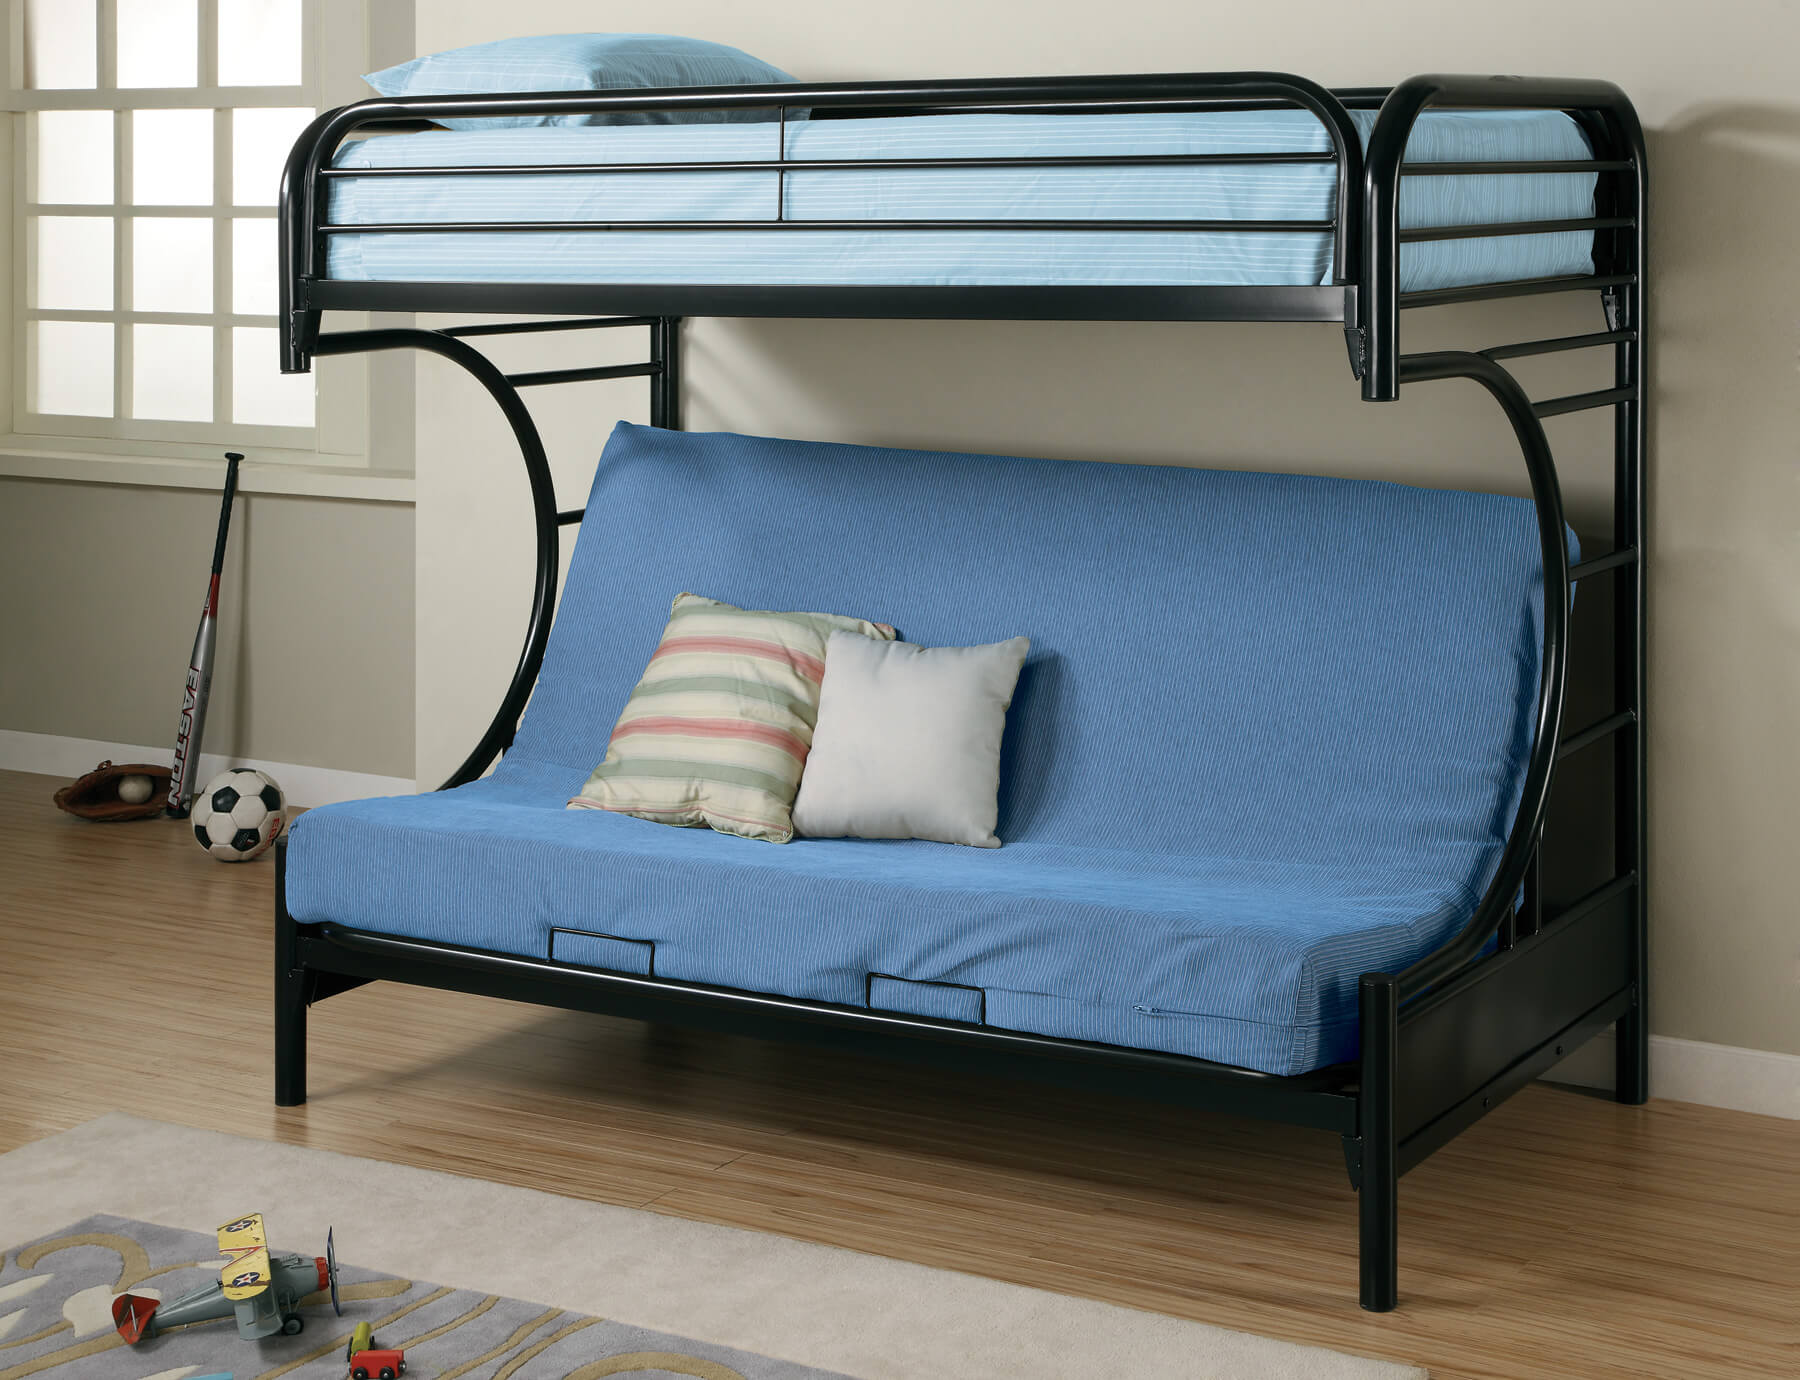 Bunk Bed With A Sofa Two Story Model